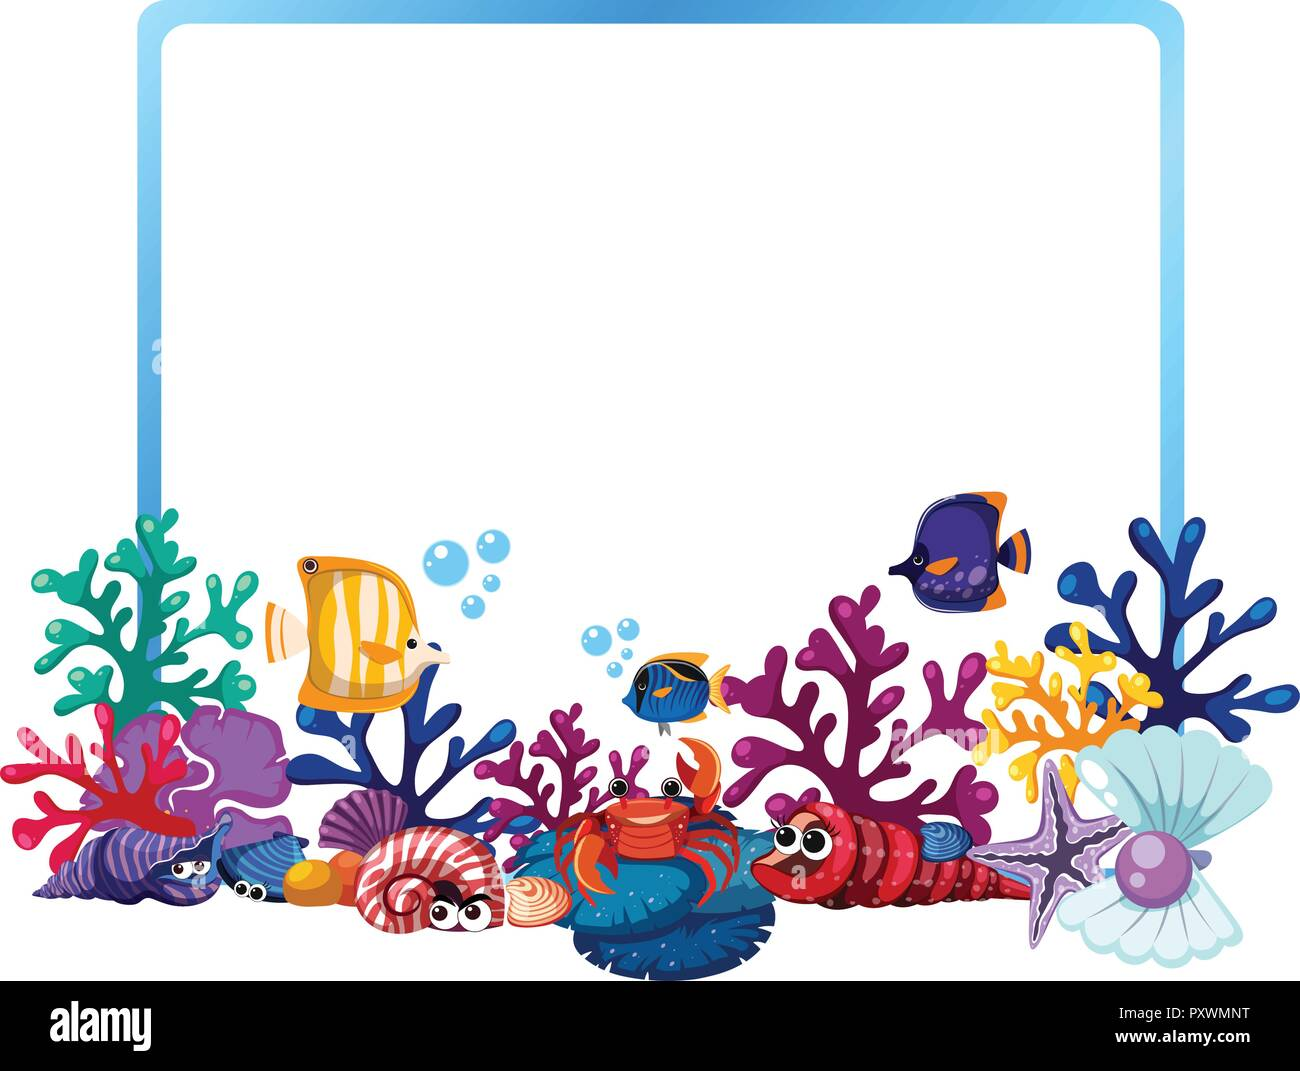 border template with fish and coral reef illustration stock vector